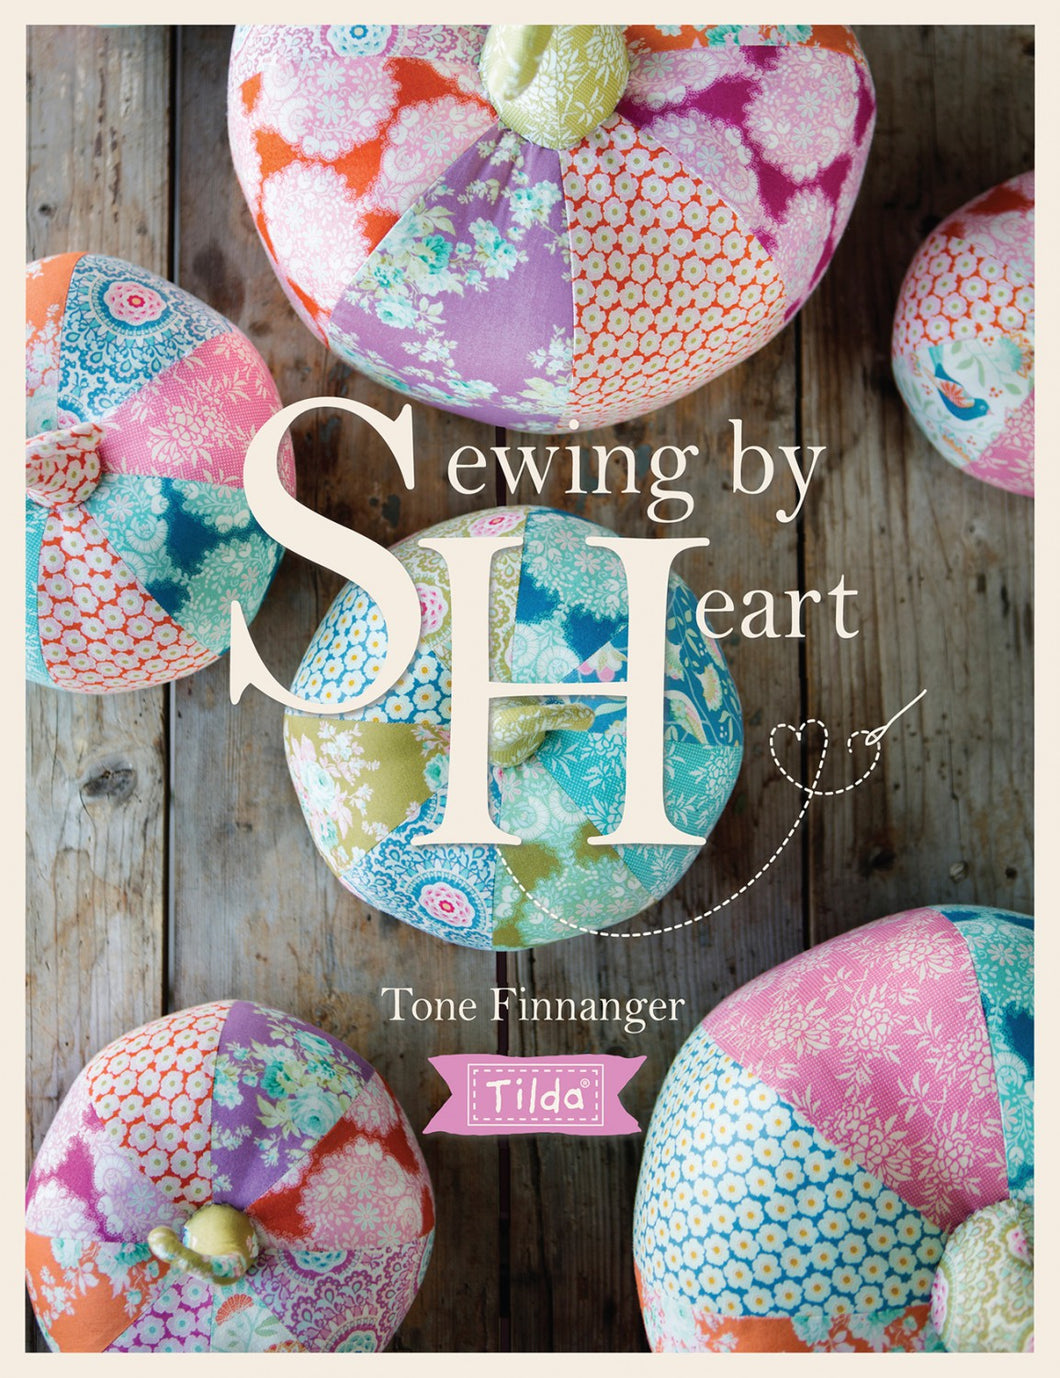 Sewing by Heart book